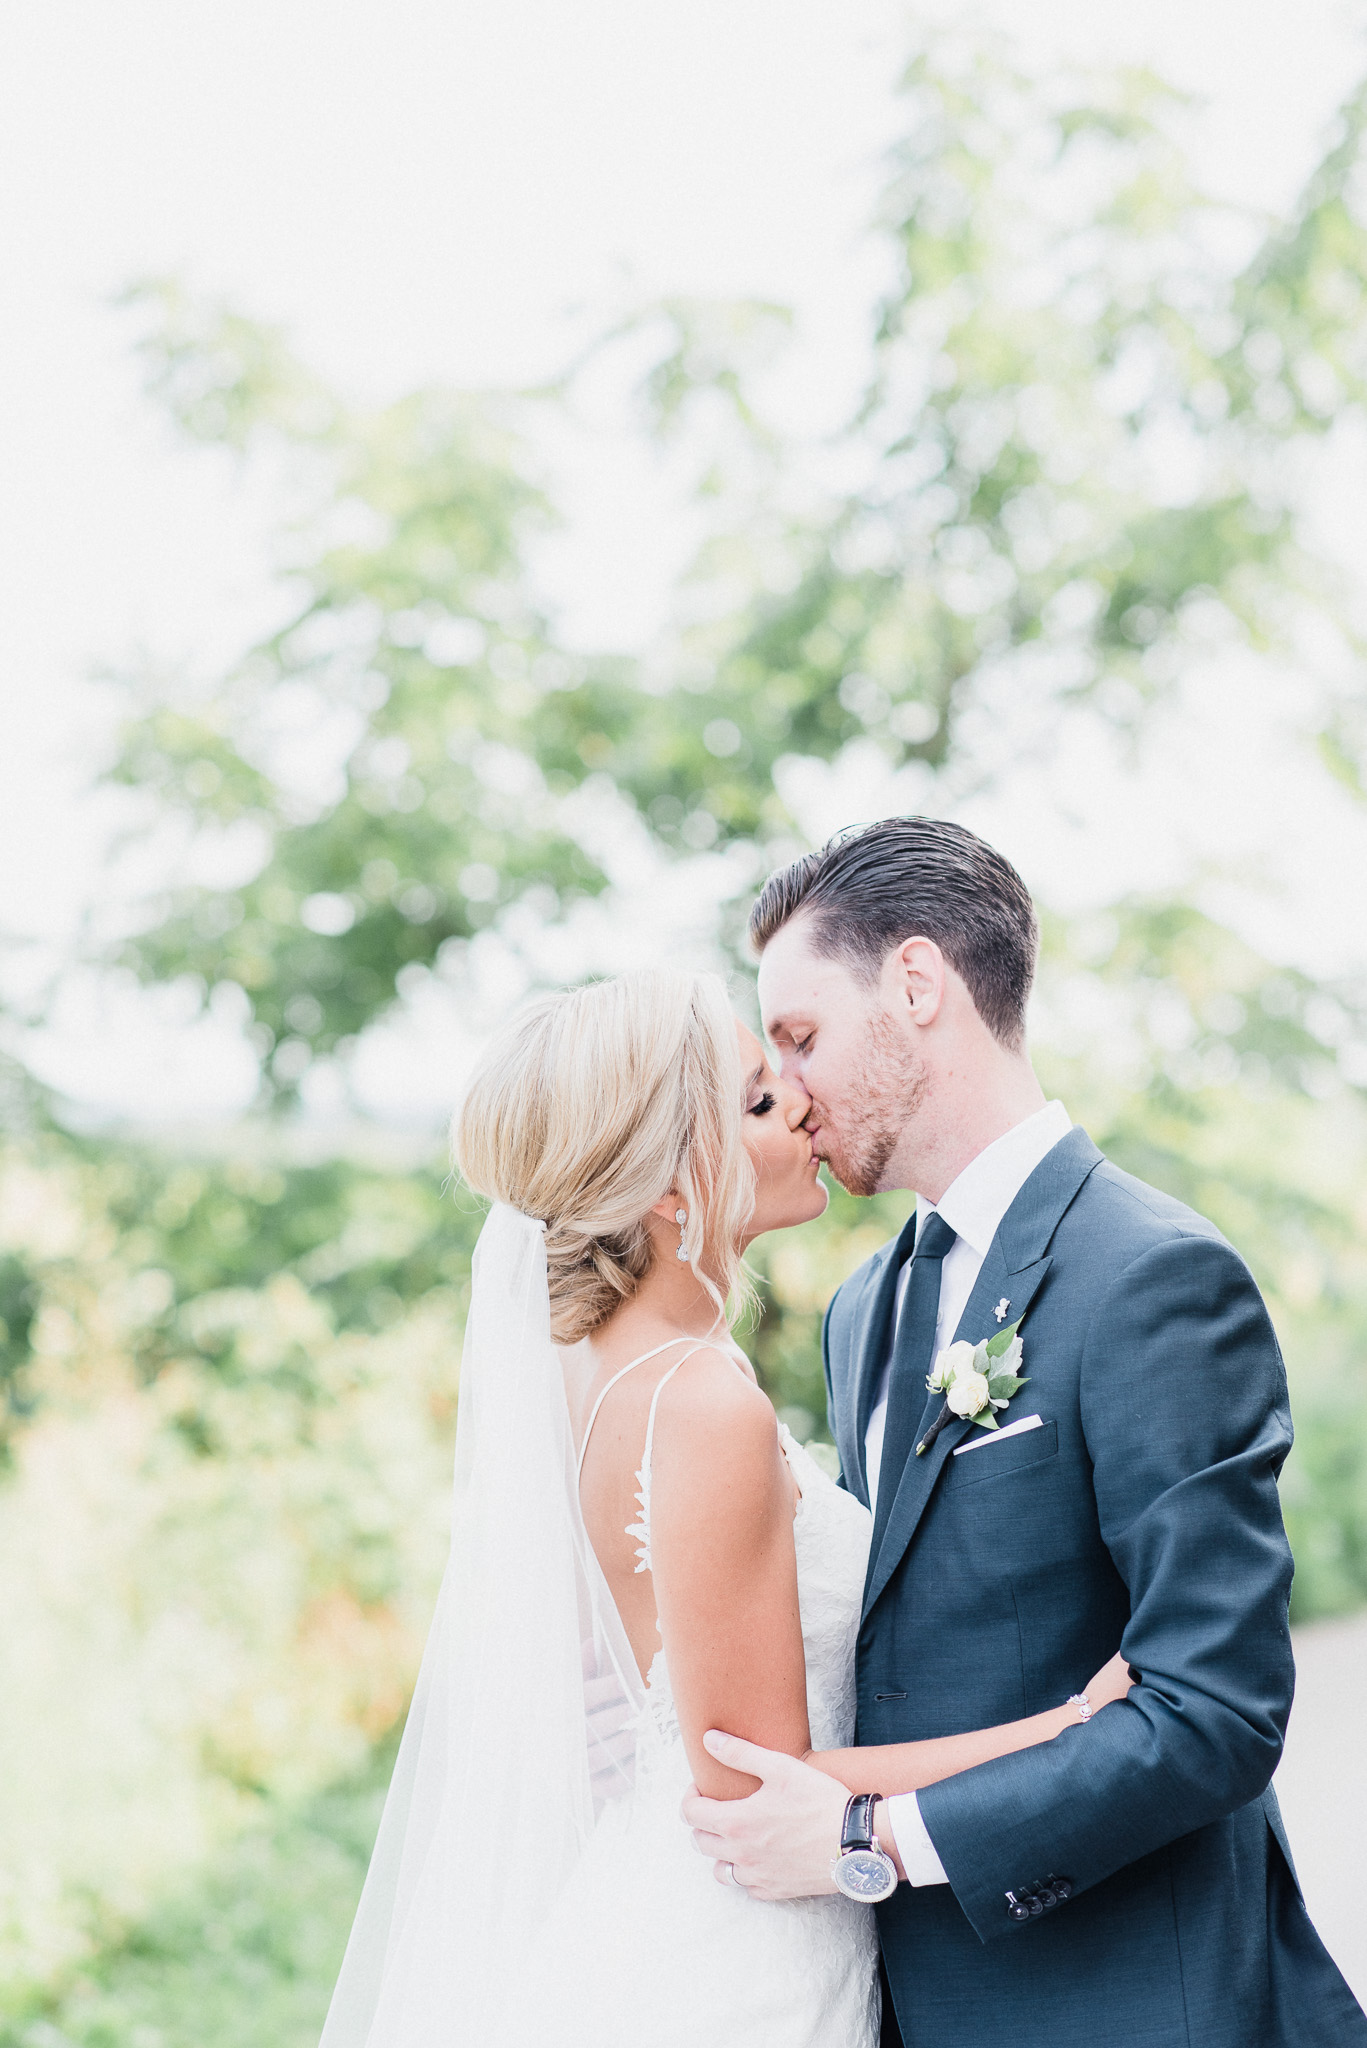 Bride and Groom Portraits at Earth to Table: The Farm by Jenn Kavanagh Photography